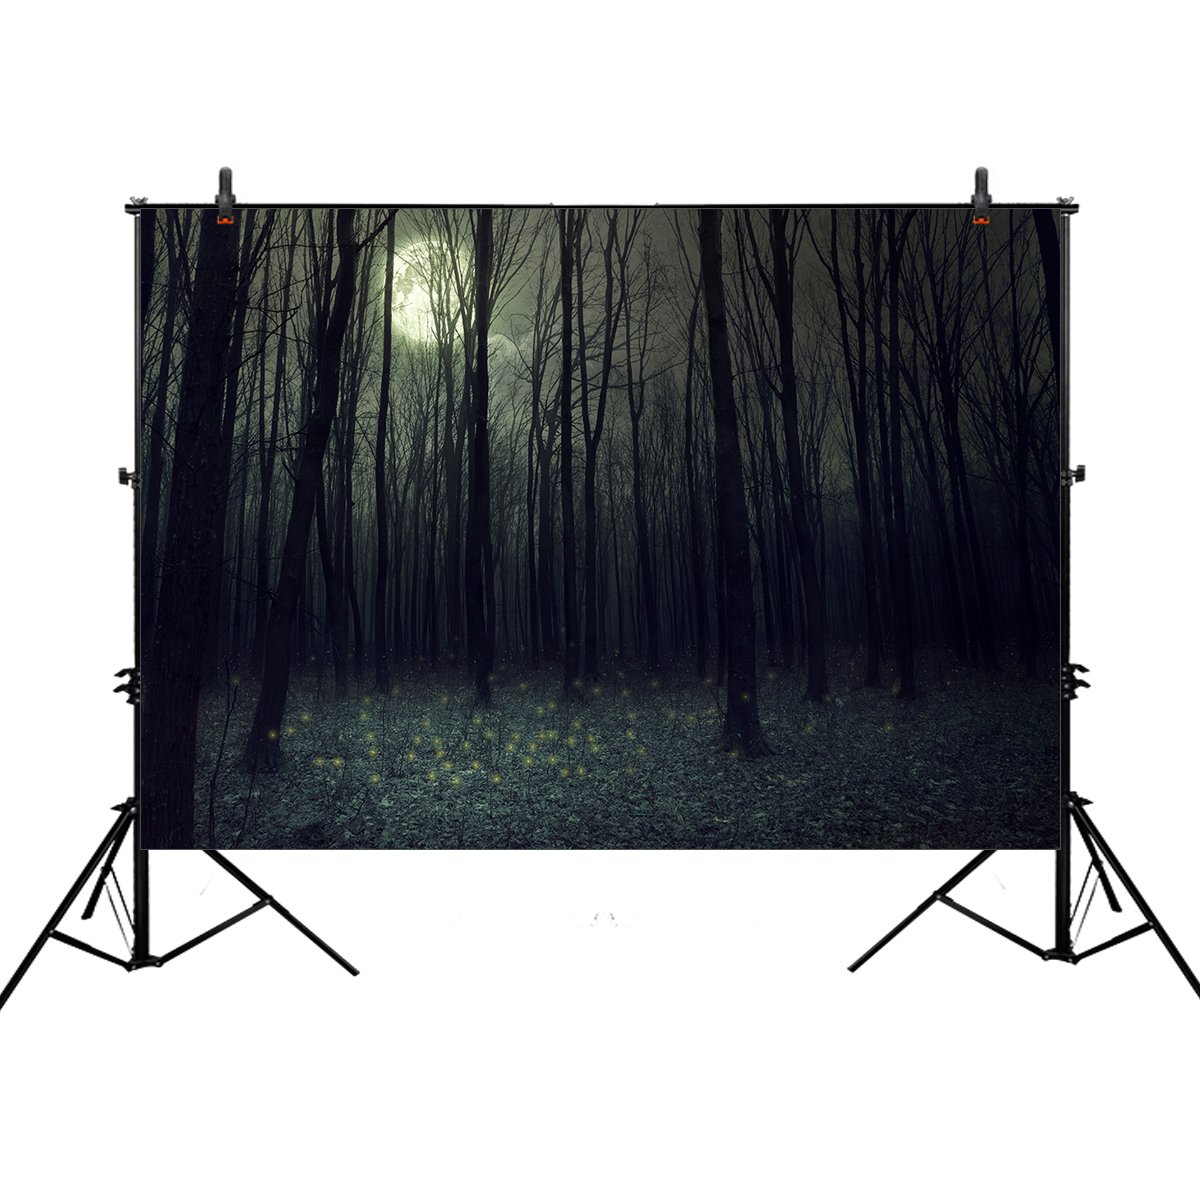 Allenjoy 7x5ft photography backdrop background darkness autumn forest halloween woods night trees Dark forest landscape props photo Woodland studio booth